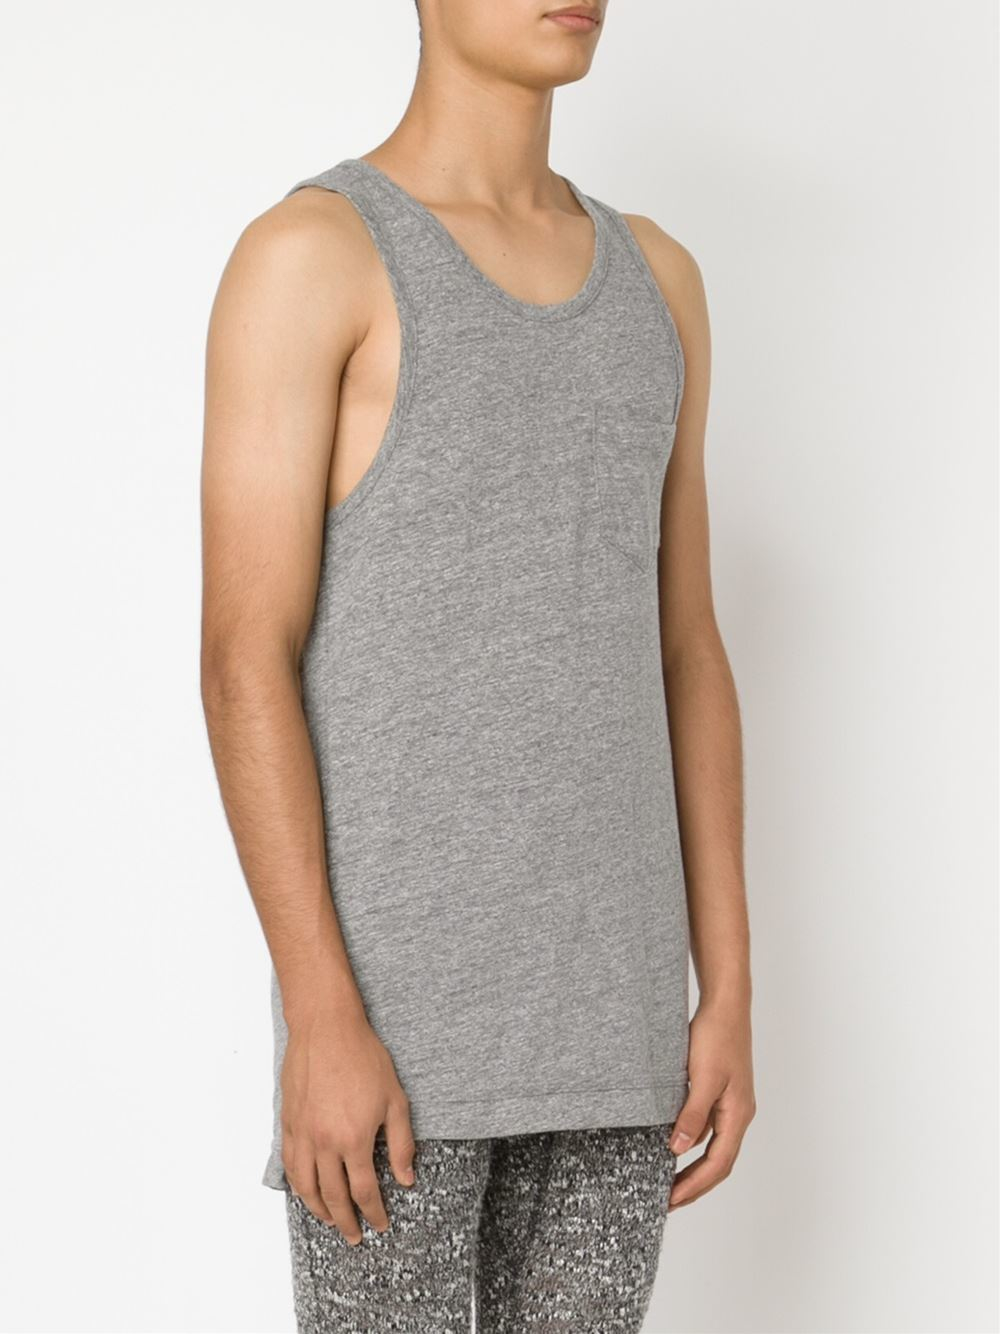 35d1a8cde2fe9d Lyst - John Elliott Mercer Cotton Tank Top in Gray for Men